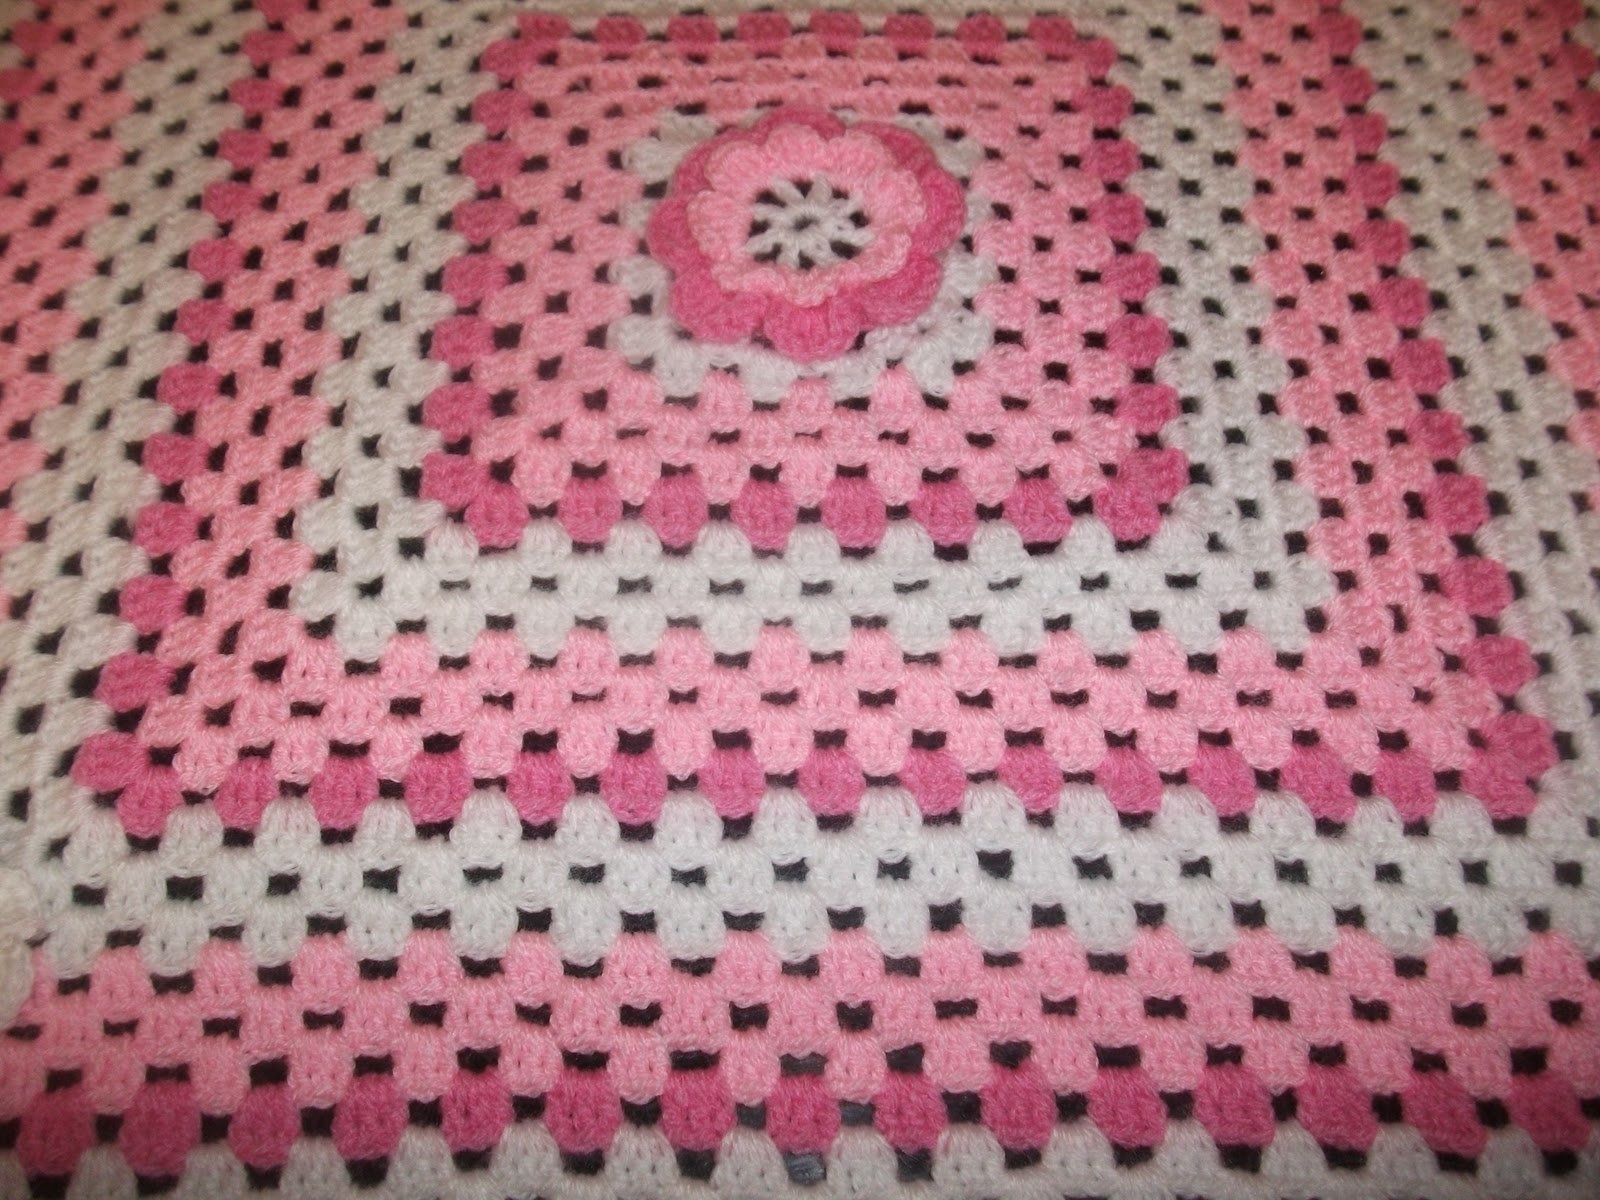 Basic Crochet Patterns : Beginner Crochet Baby Blankets - Crochet Club